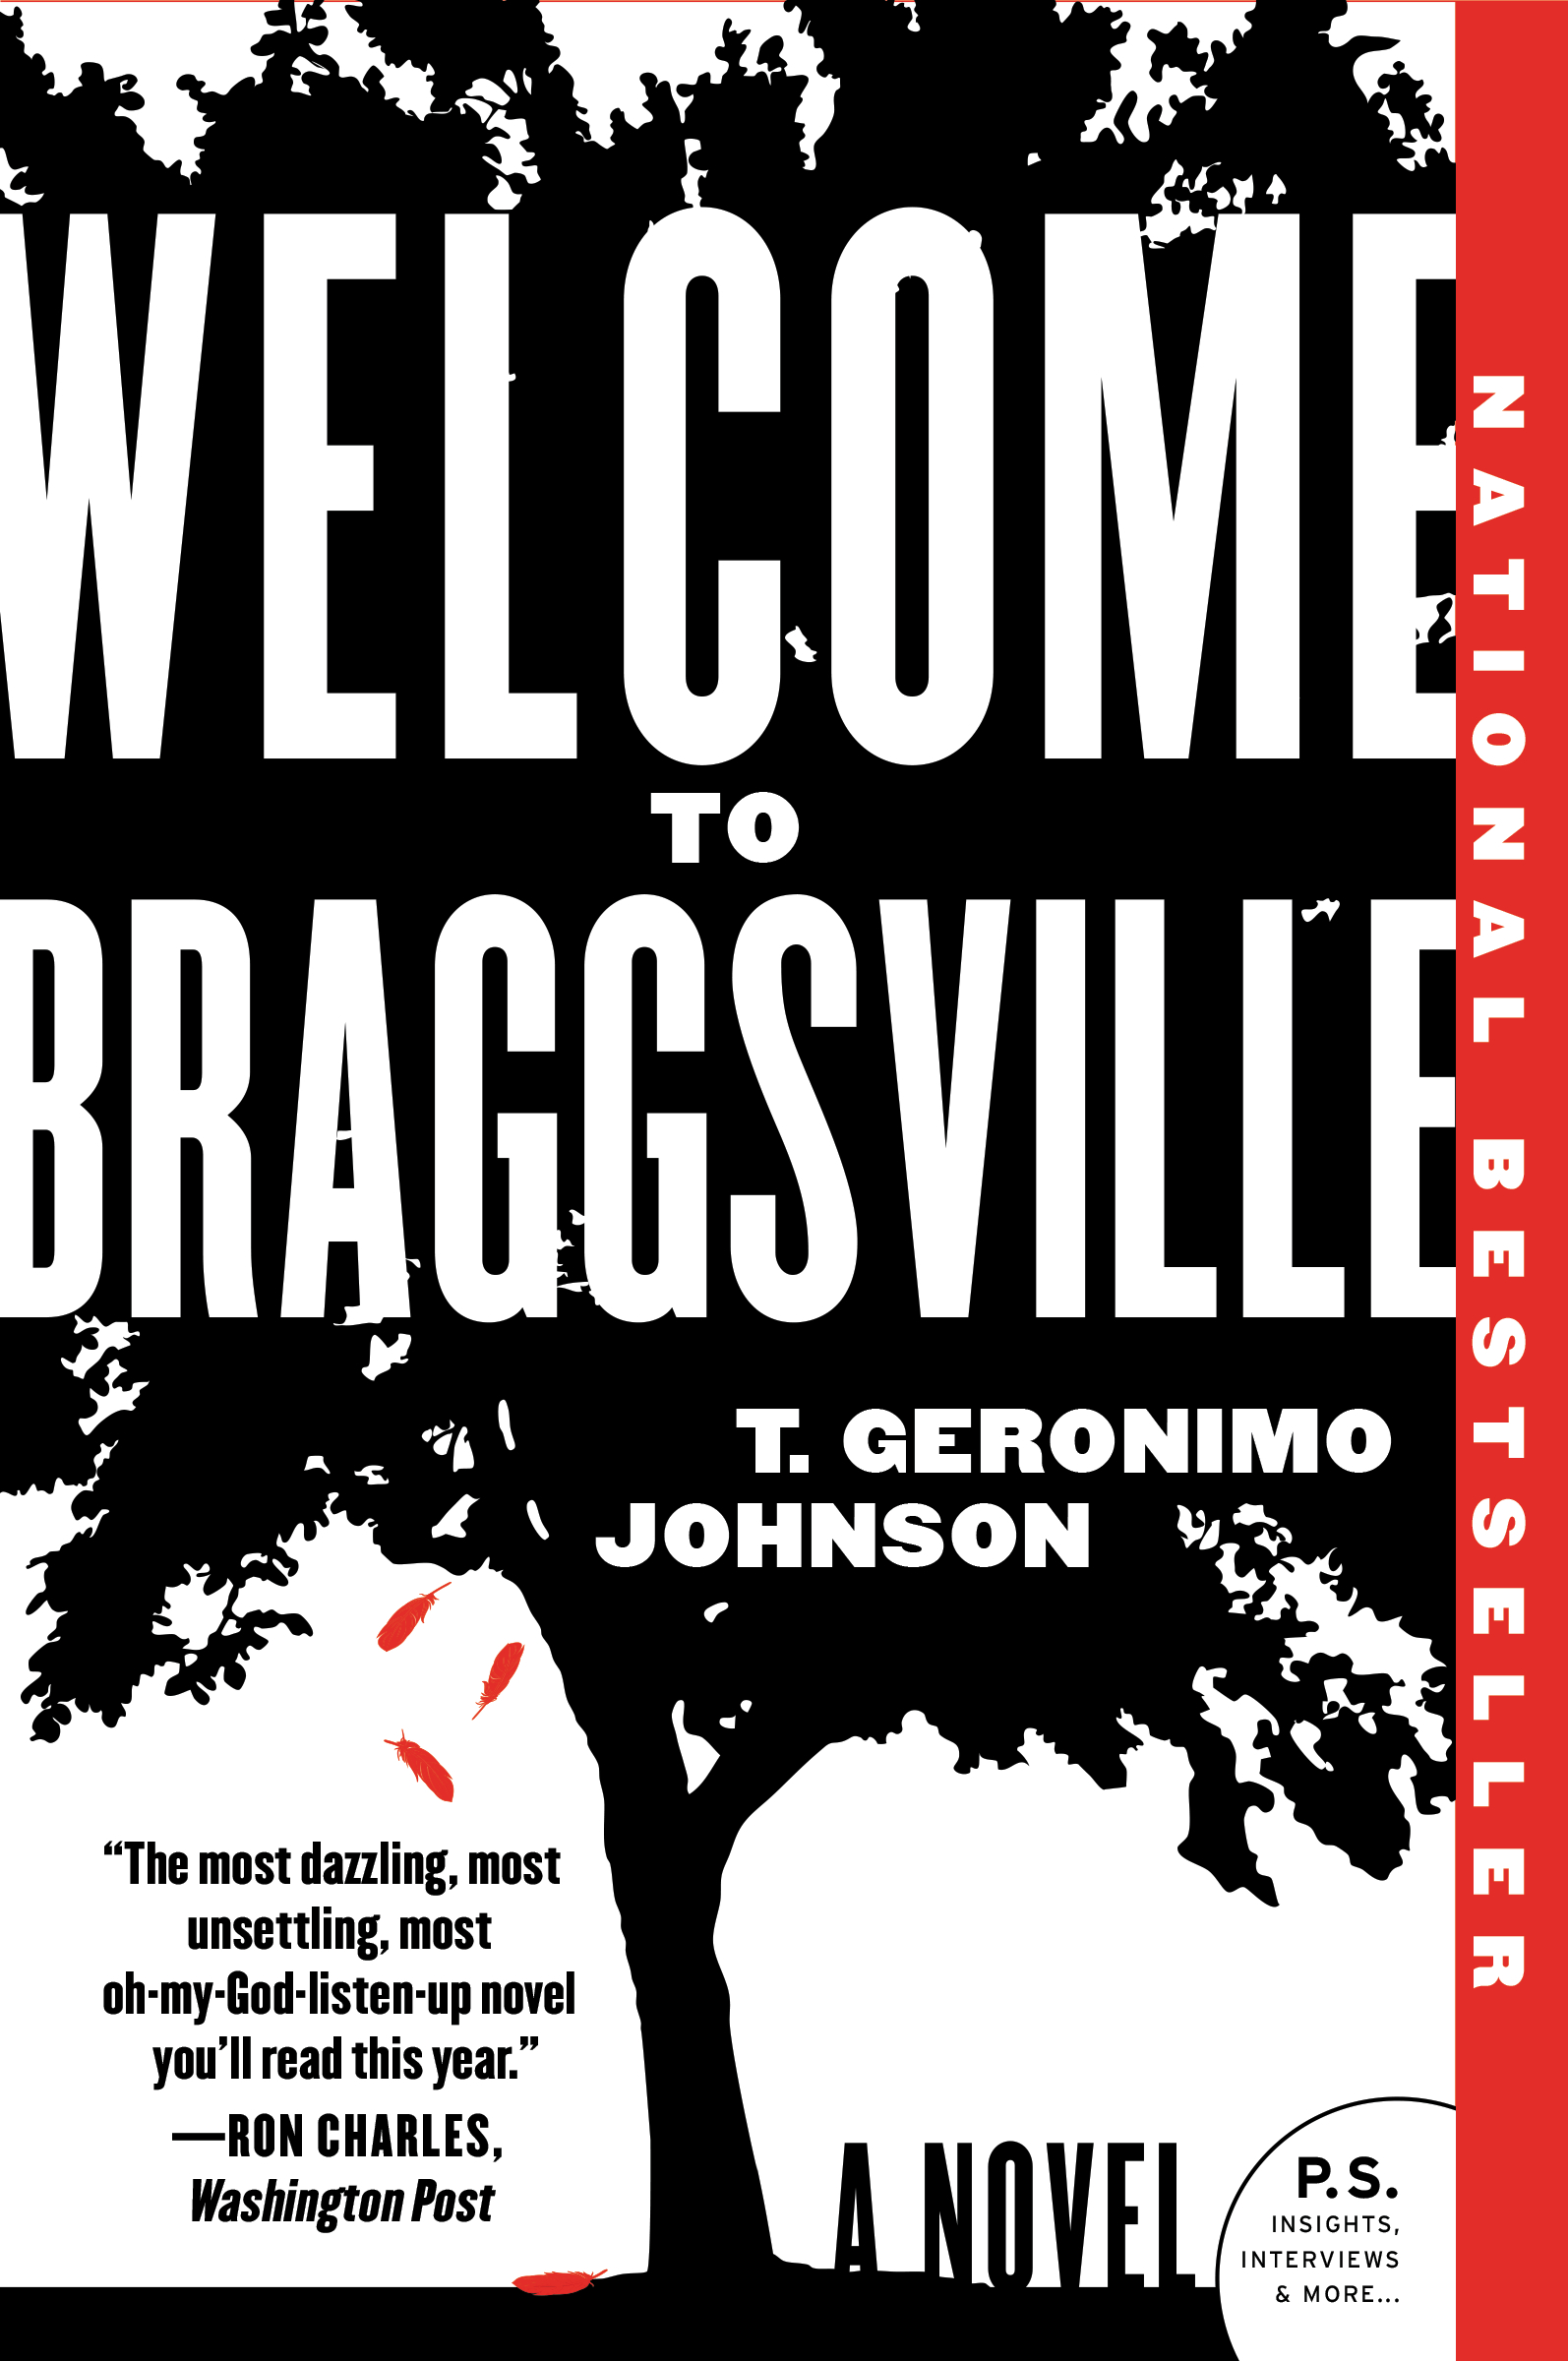 Top 10 Fiction Welcome to Braggsville by T. Geronimo Johnson